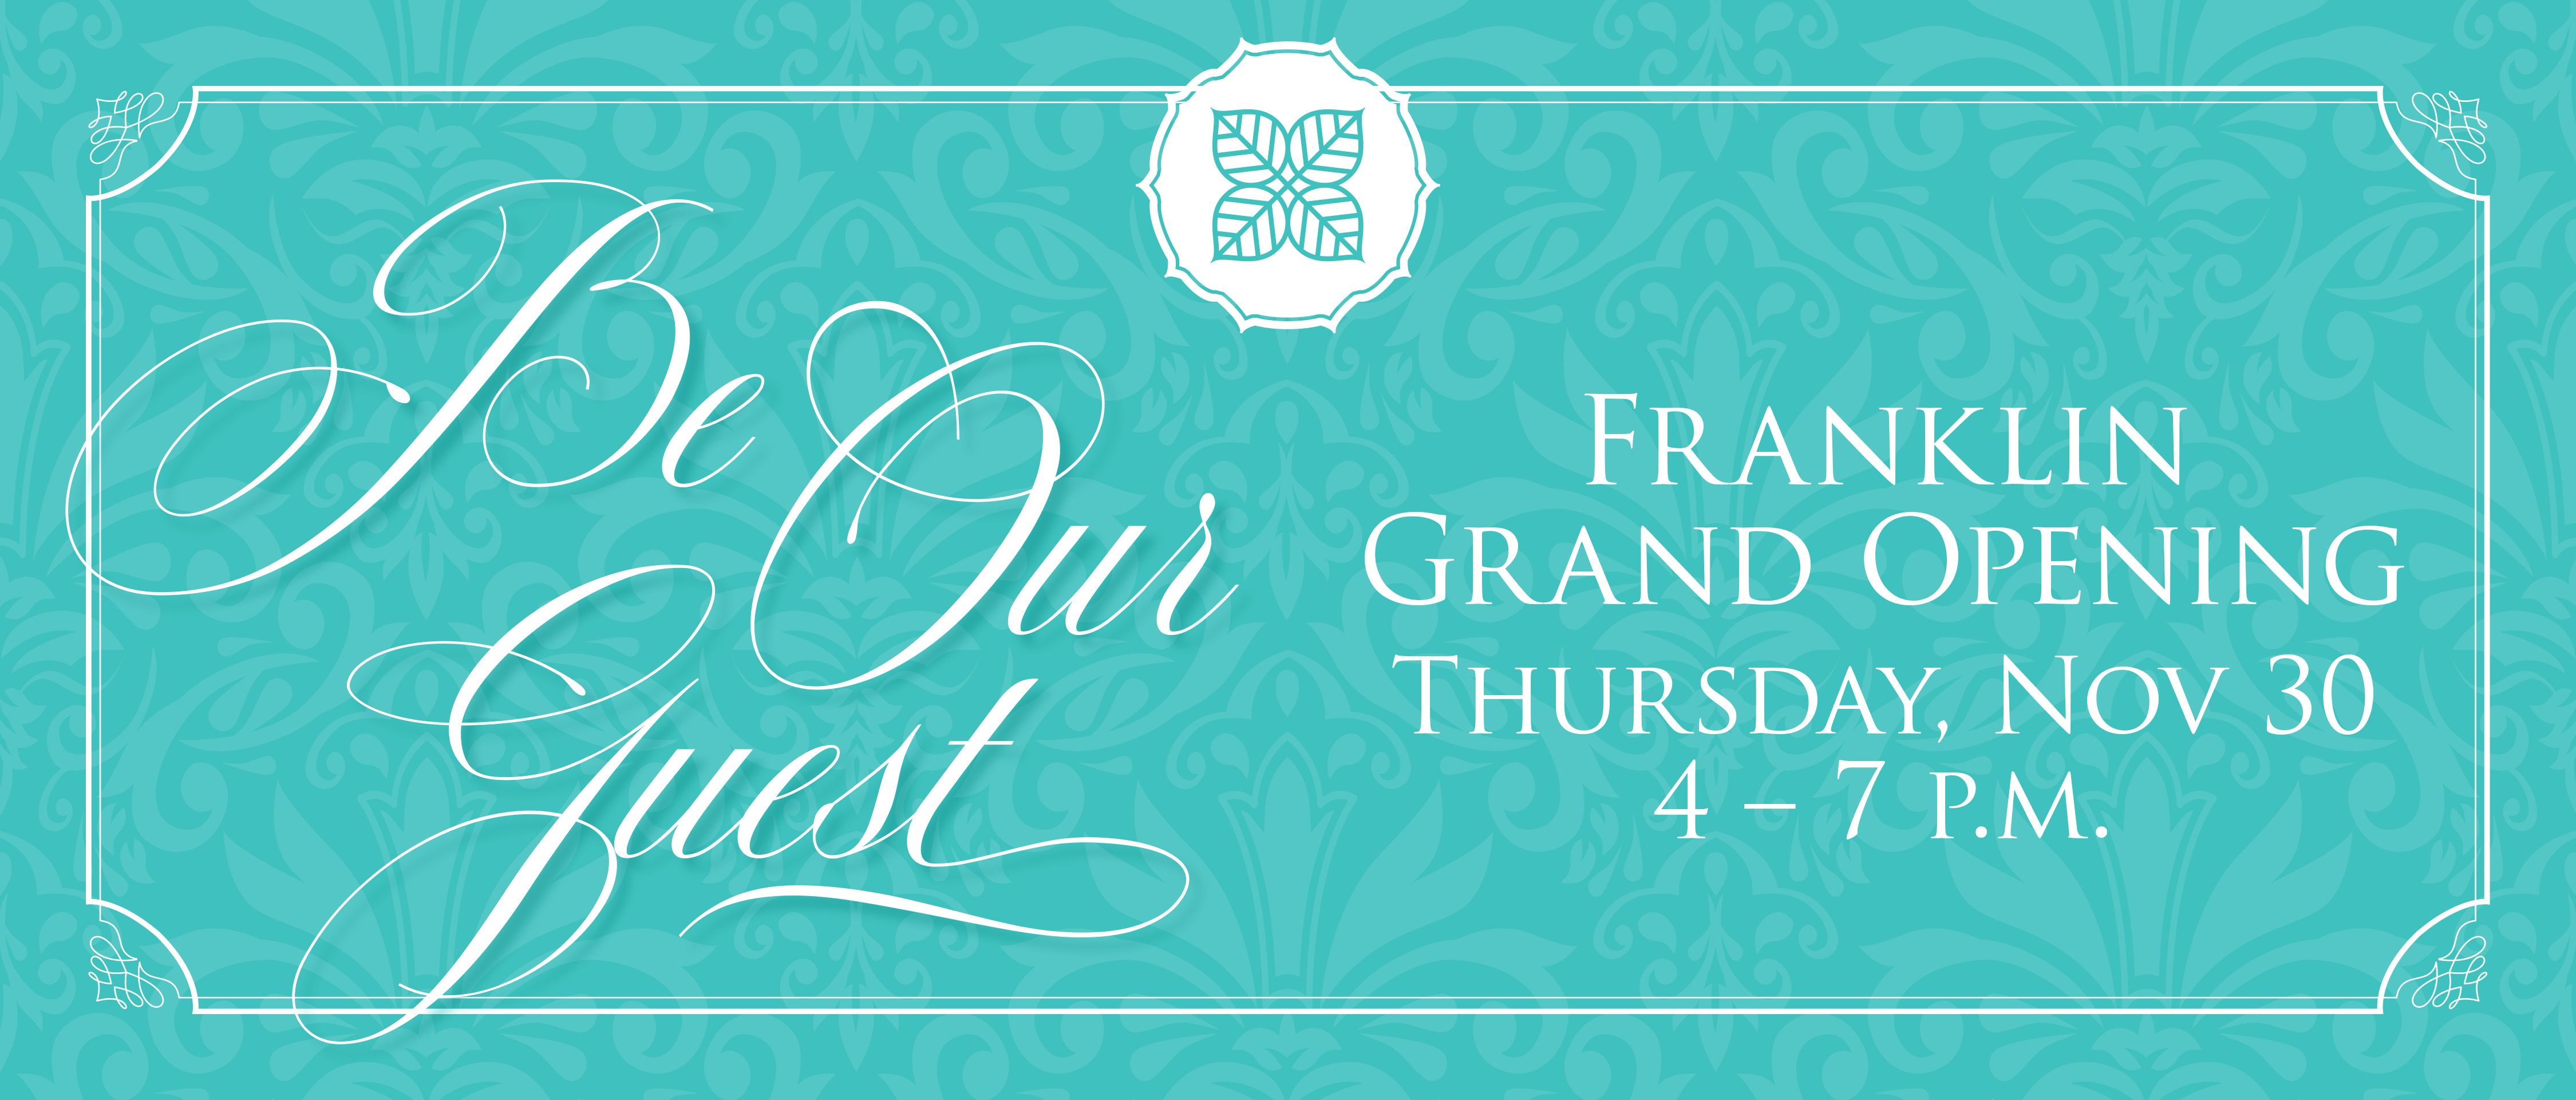 Franklin Grand Opening